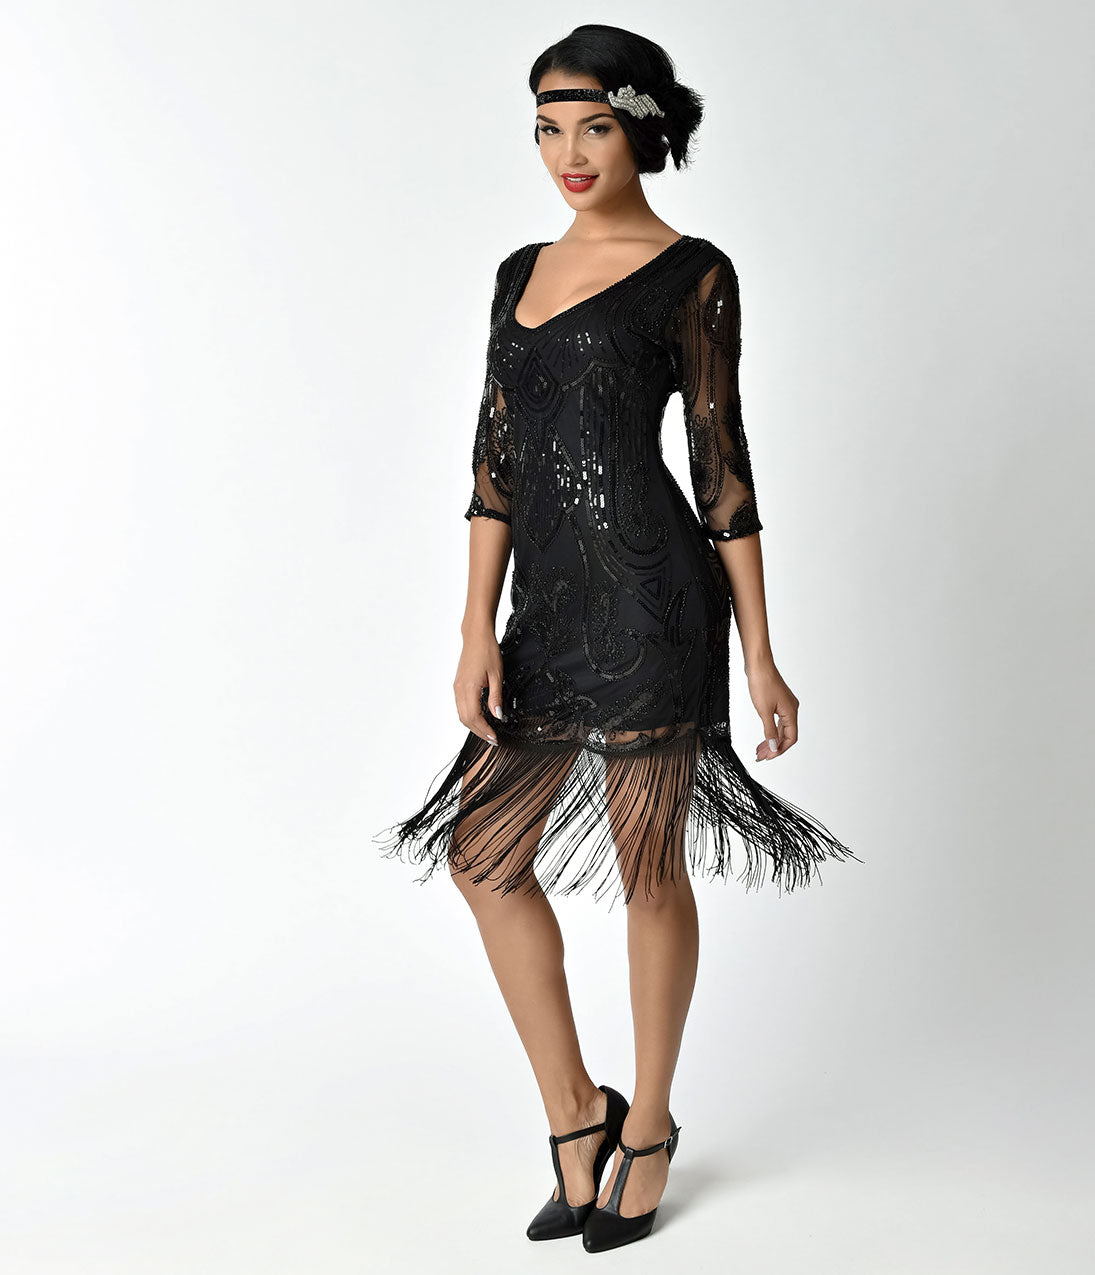 Flapper Costume: How to Dress Like a 20s Flapper Girl Unique Vintage Black Beaded  Sequin Margaux Sleeved Fringe Cocktail Dress $110.00 AT vintagedancer.com